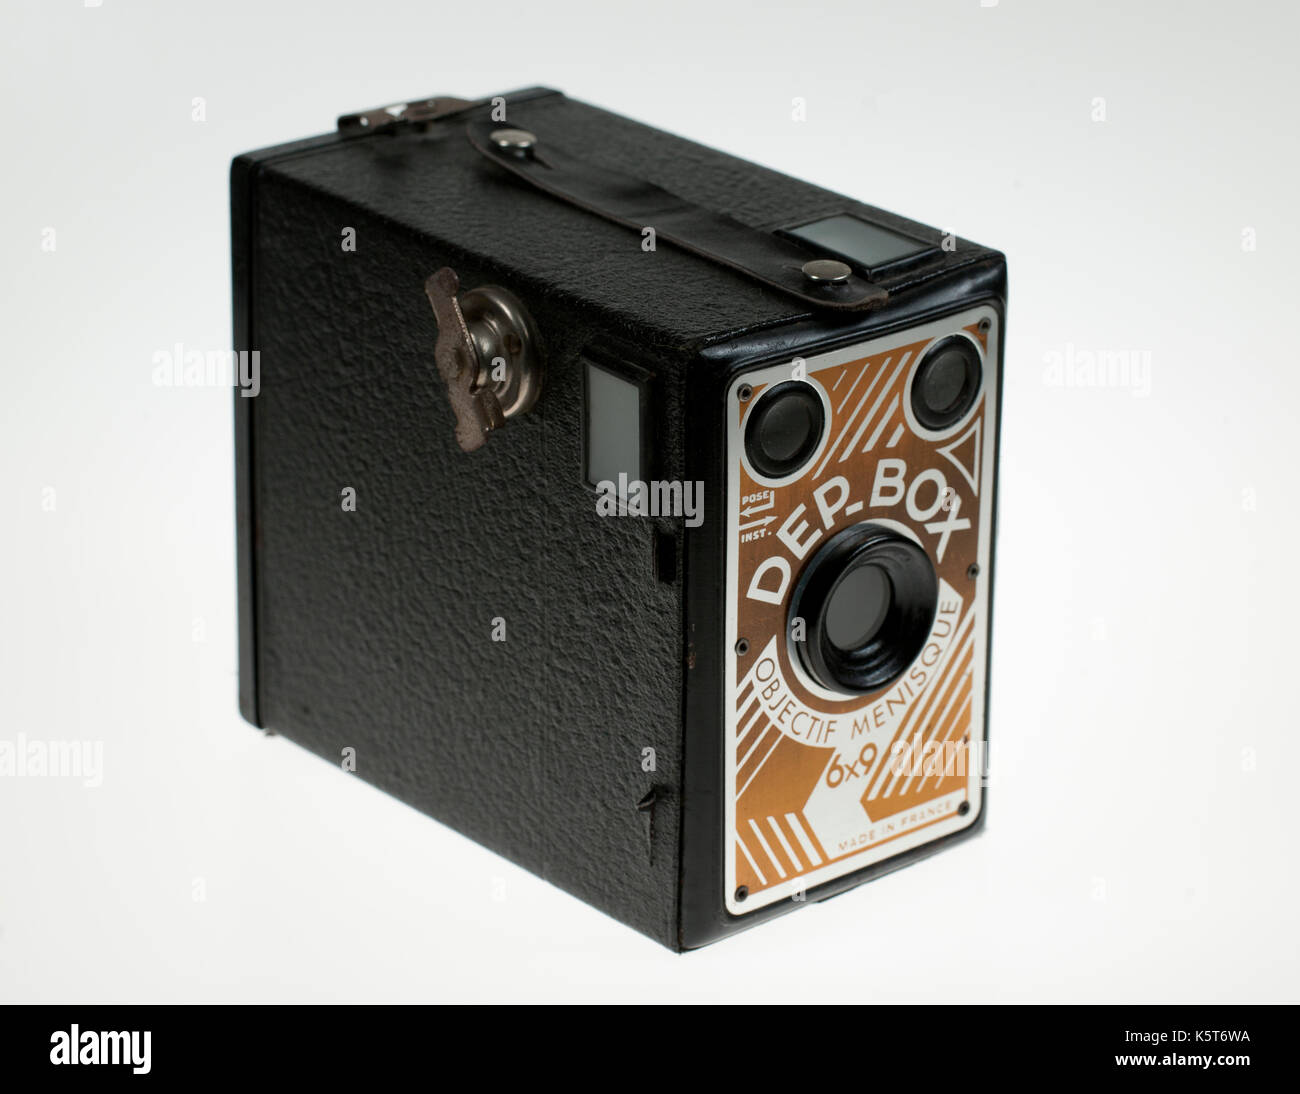 Mecaoptic DEP-Box Camera - Made in France - Stock Image